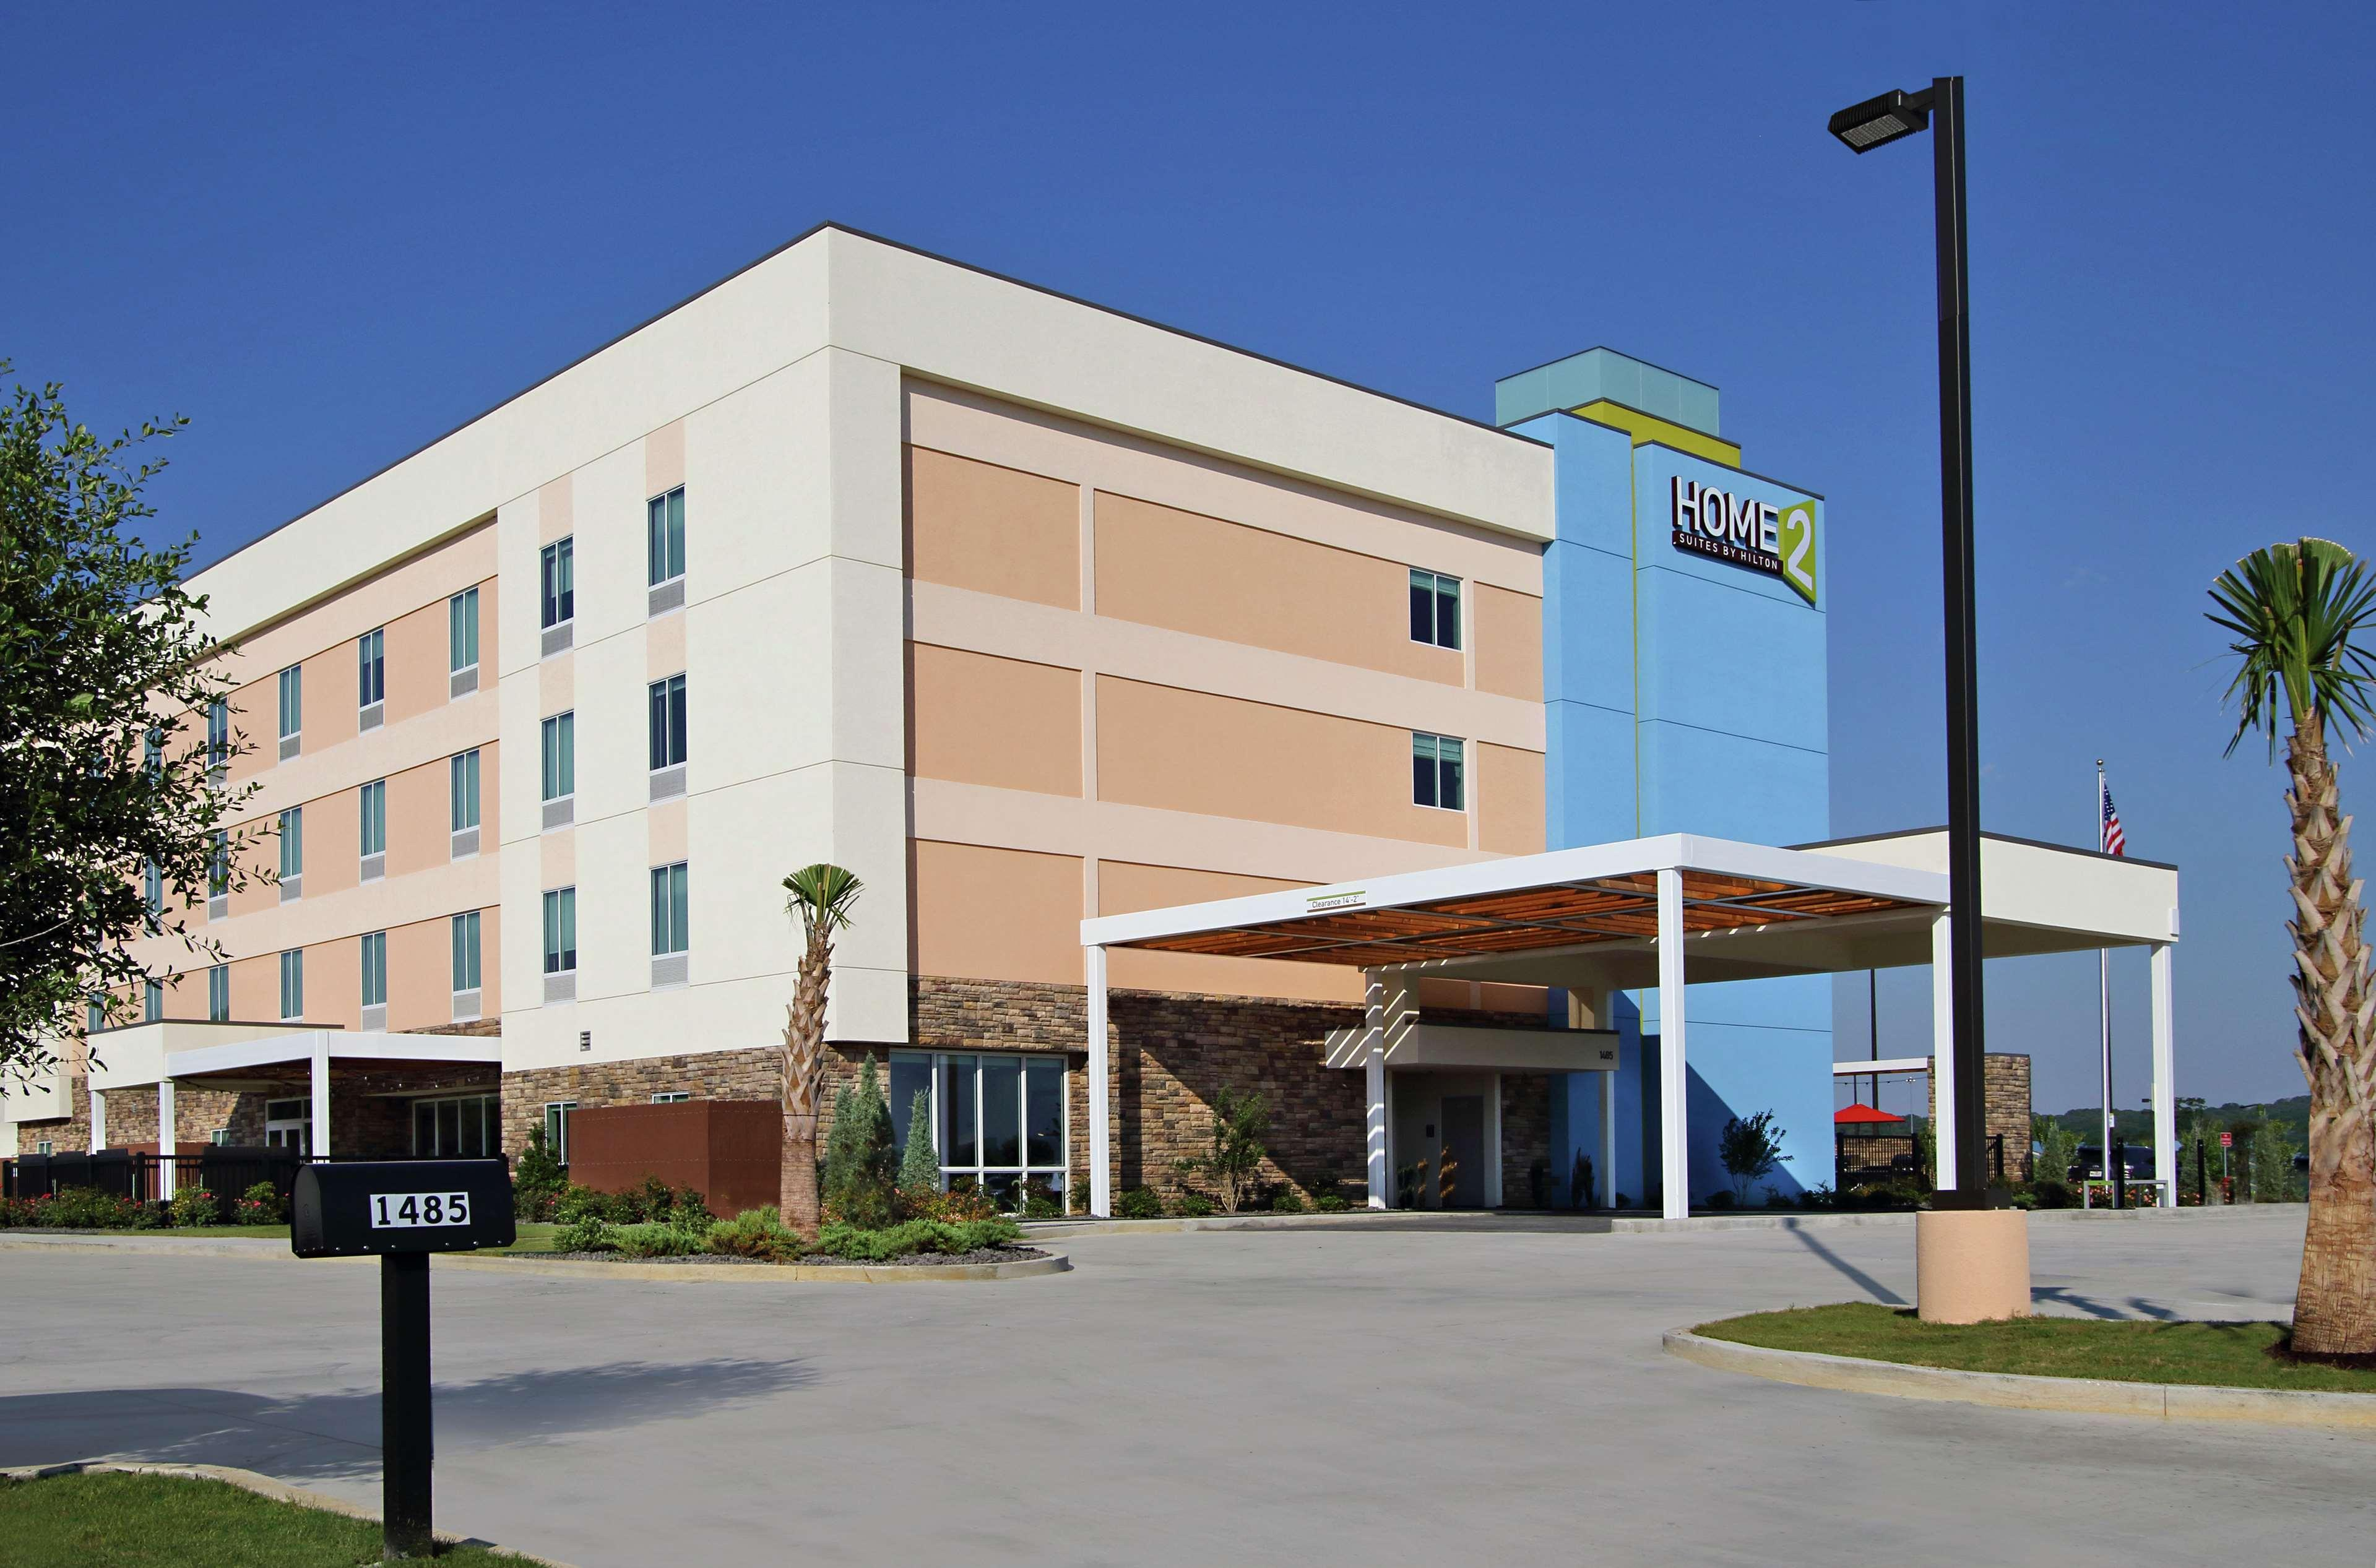 Home2 Suites by Hilton Mobile I-65 Government Blvd, Mobile